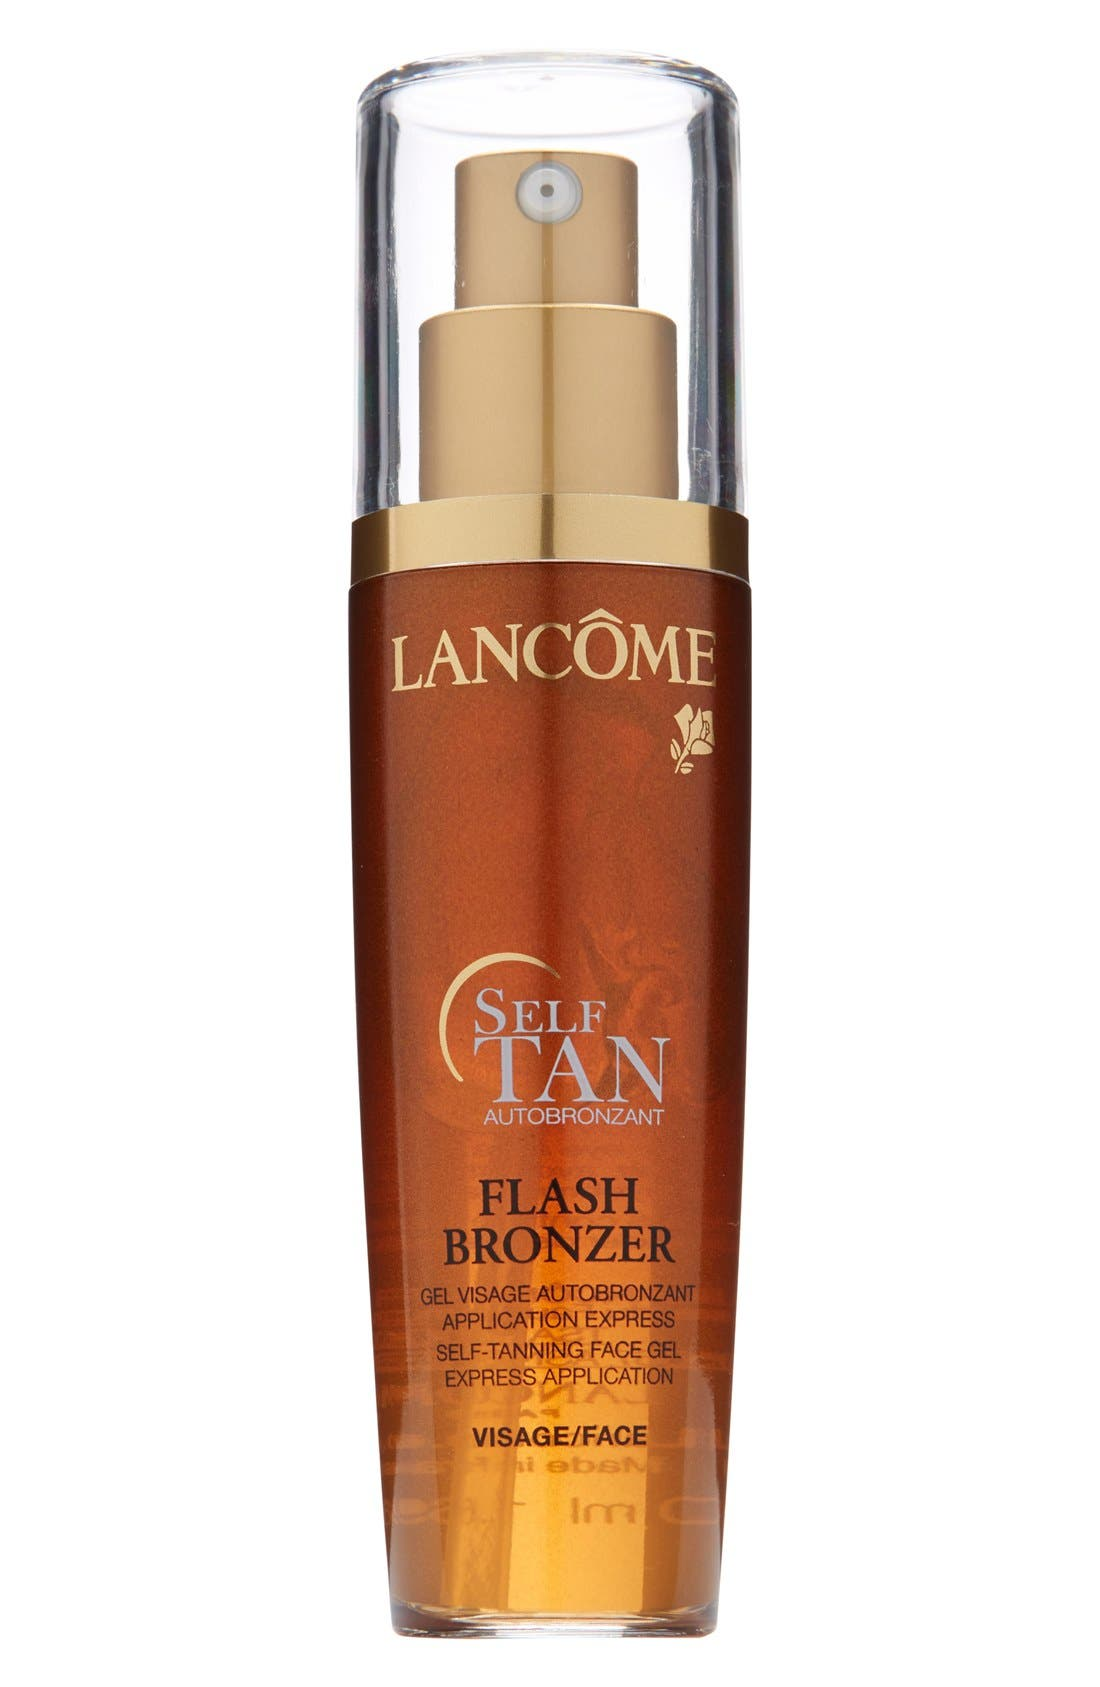 Lancôme Flash Bronzer Self-Tanning Gel Bronzer